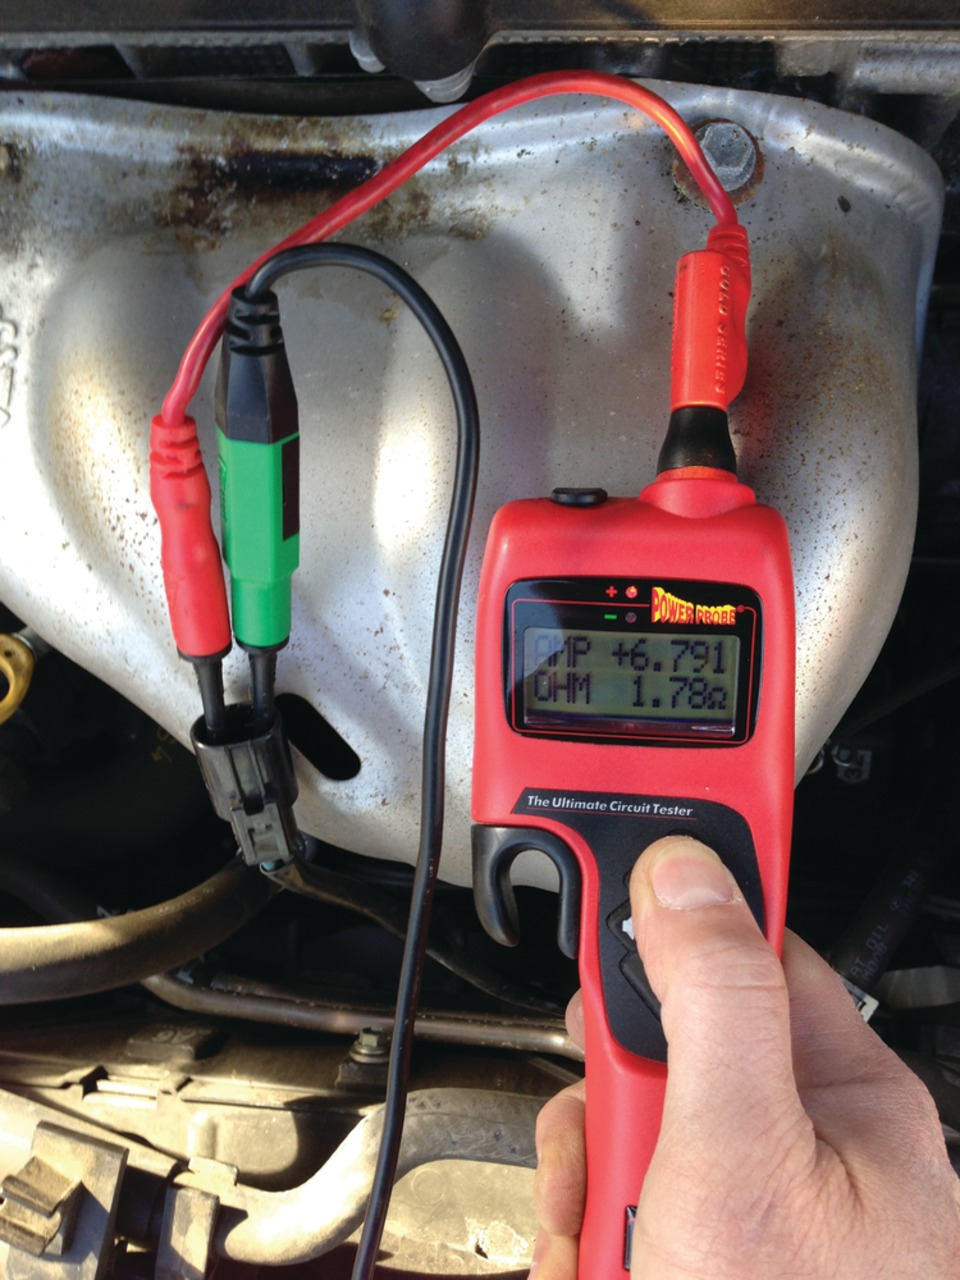 medium resolution of matco recommends coupling its tp3405 leak detection dye with its rpt102 cooling system pressure tester when under pressure dye may be left behind where a